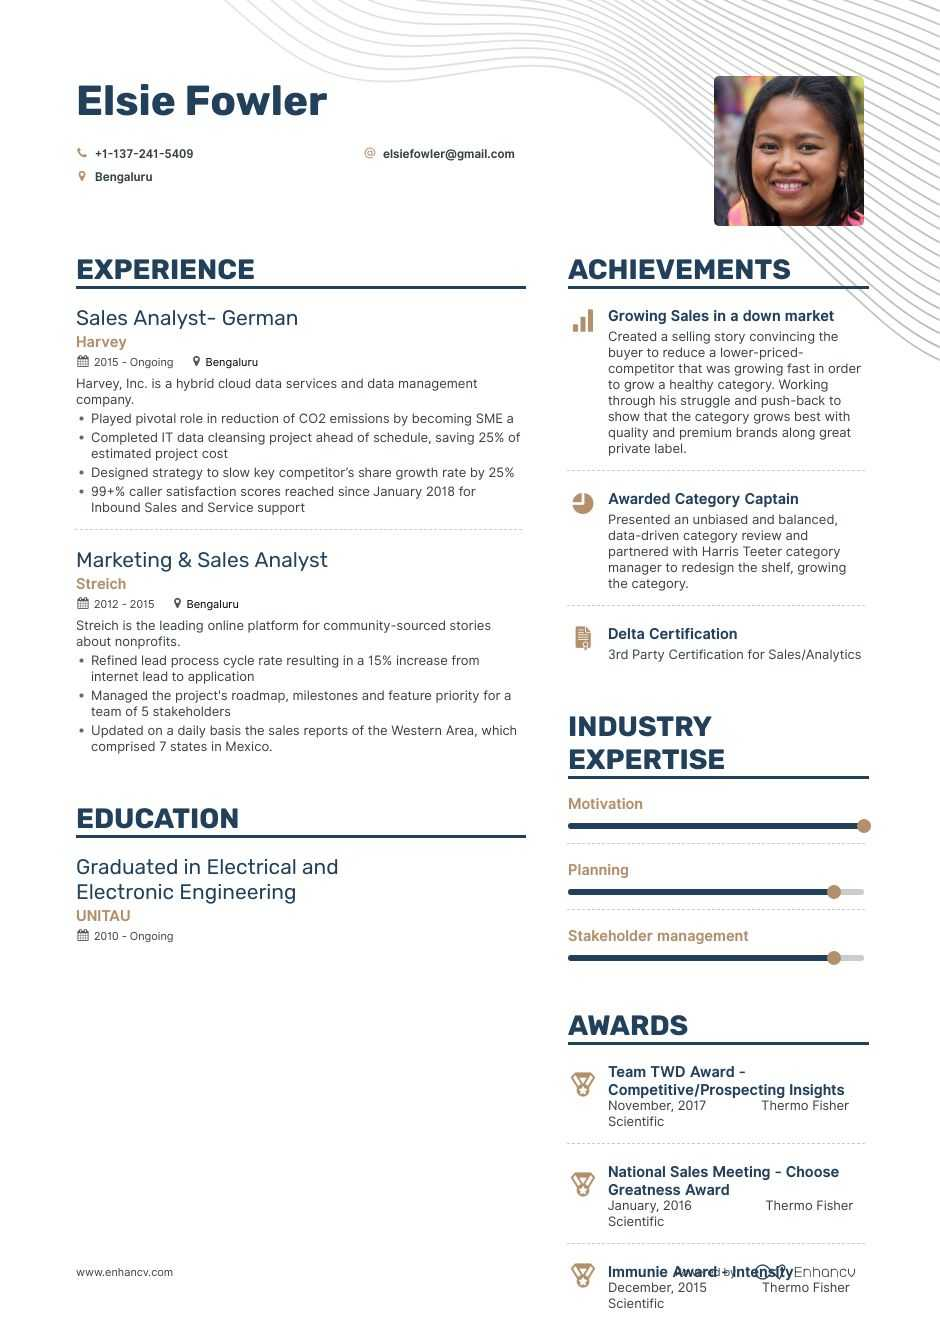 top analyst resume examples samples for enhancv awards playlist photographer assistant Resume Awards Examples For Resume